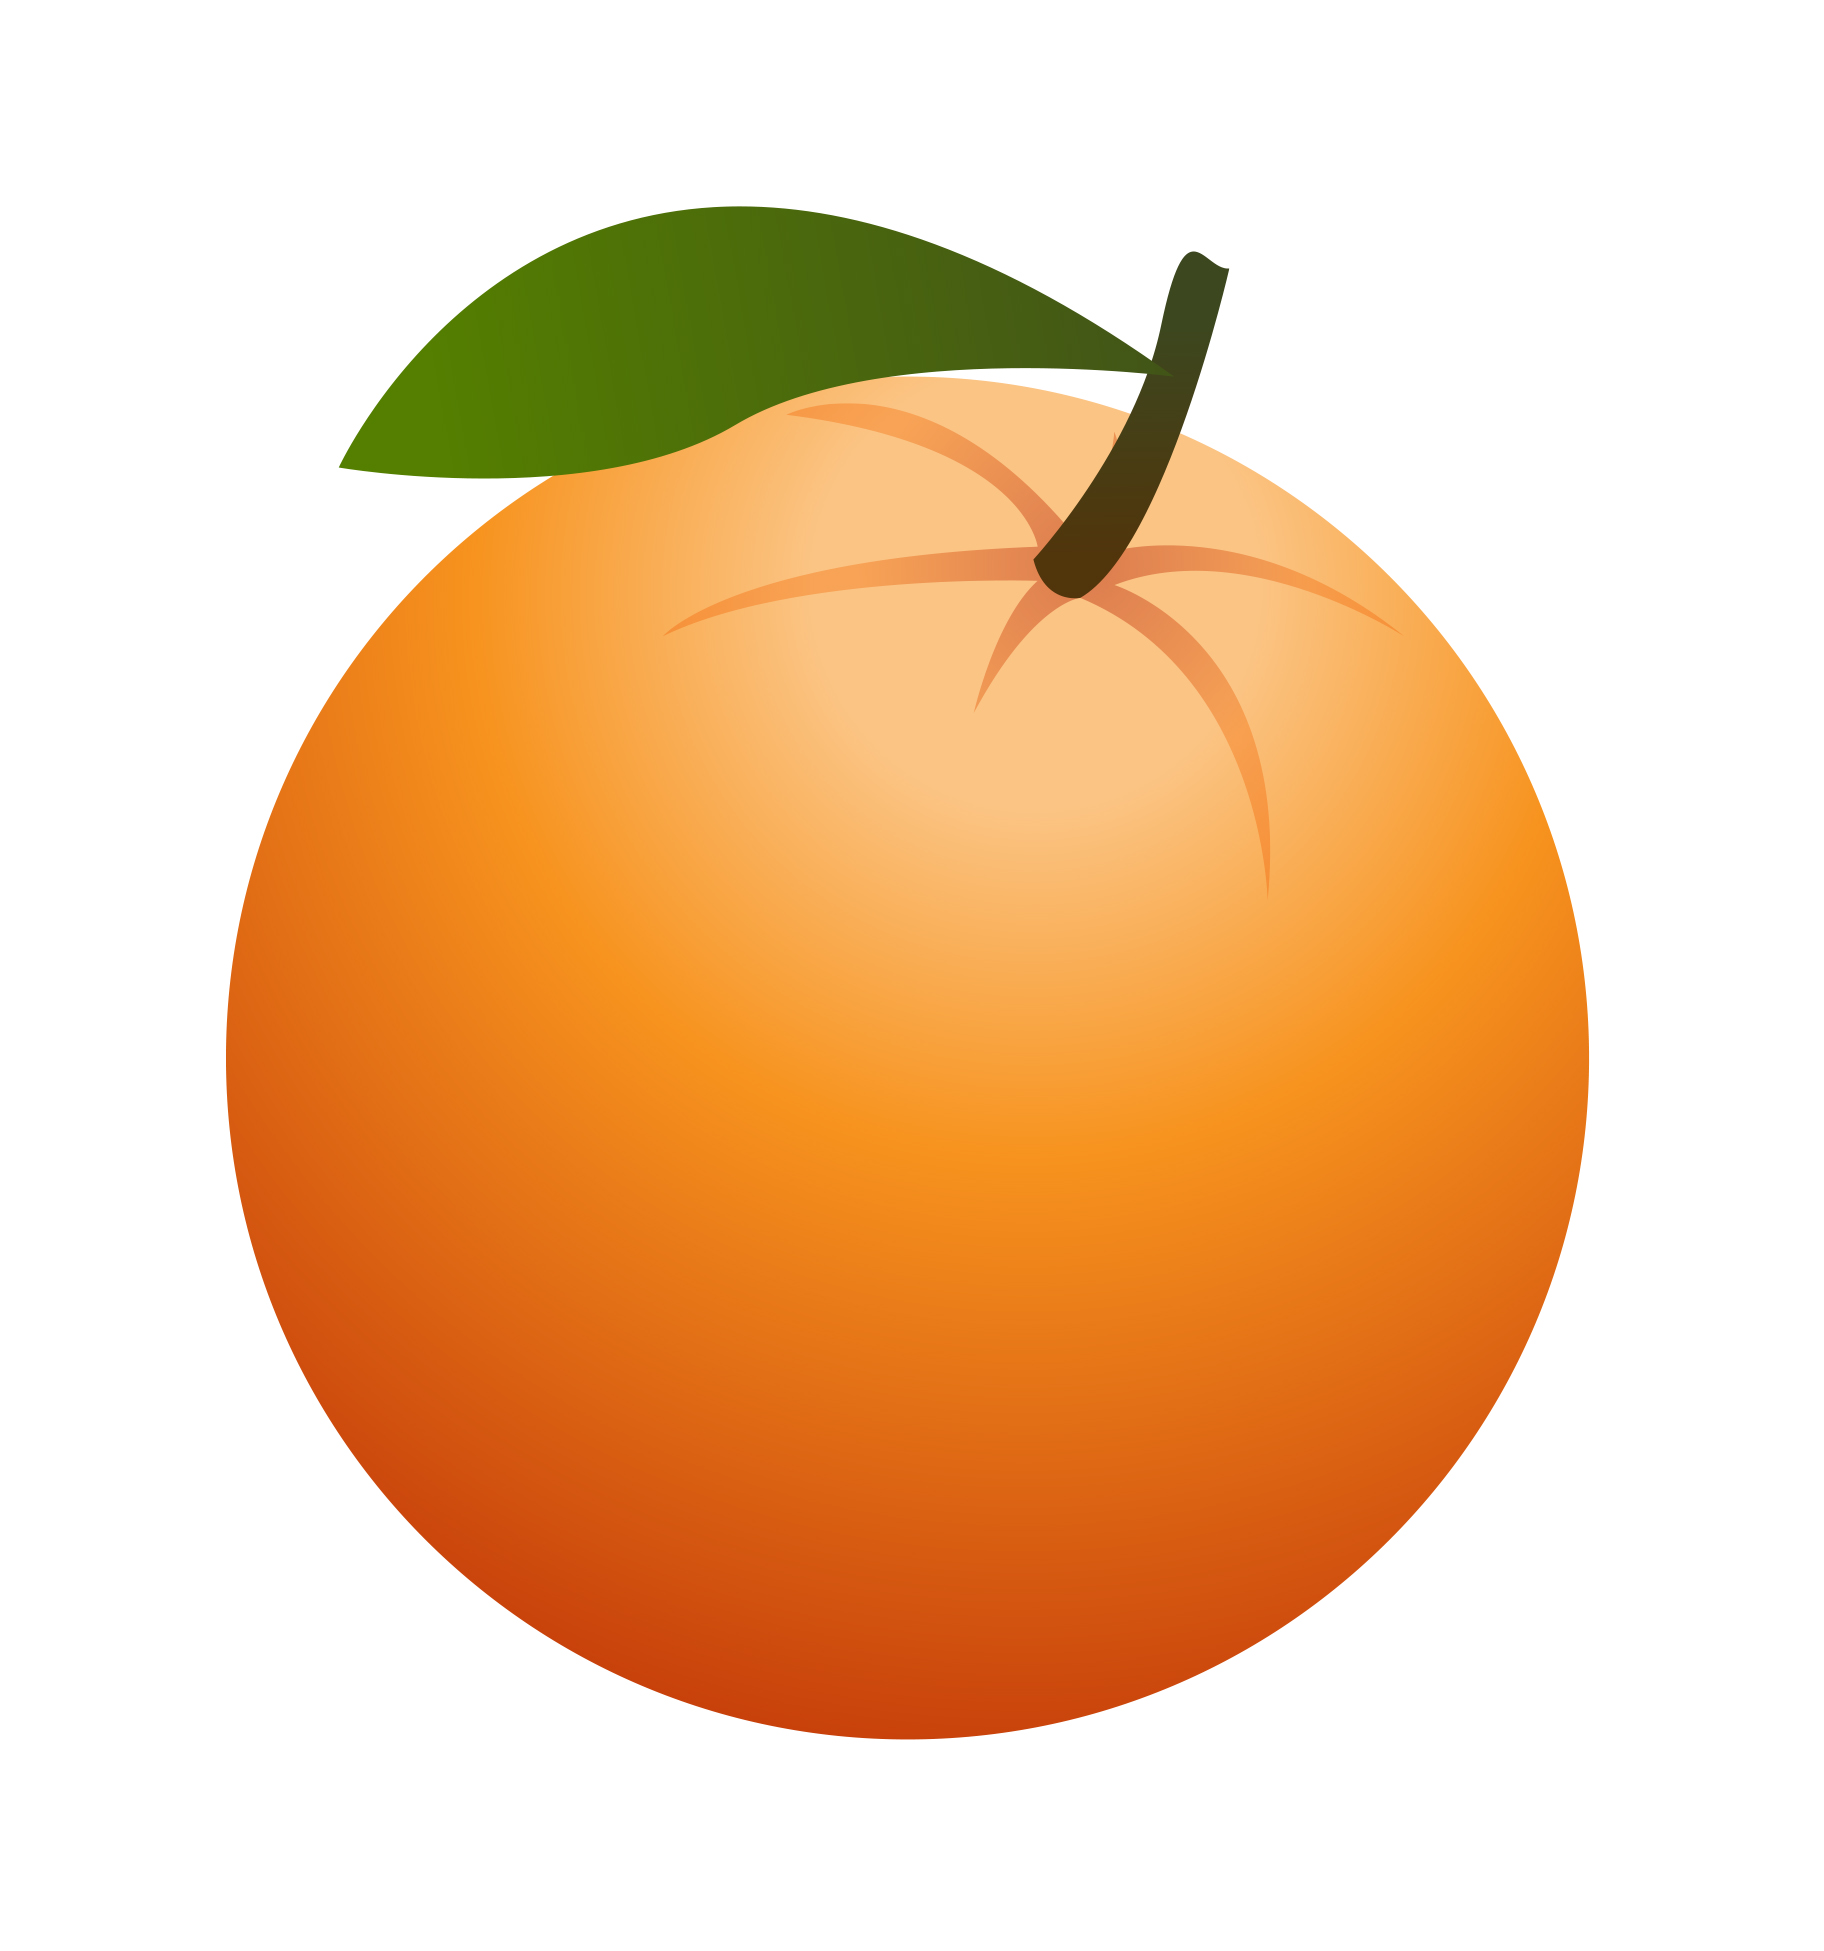 Orange fruit clipart kid 2.